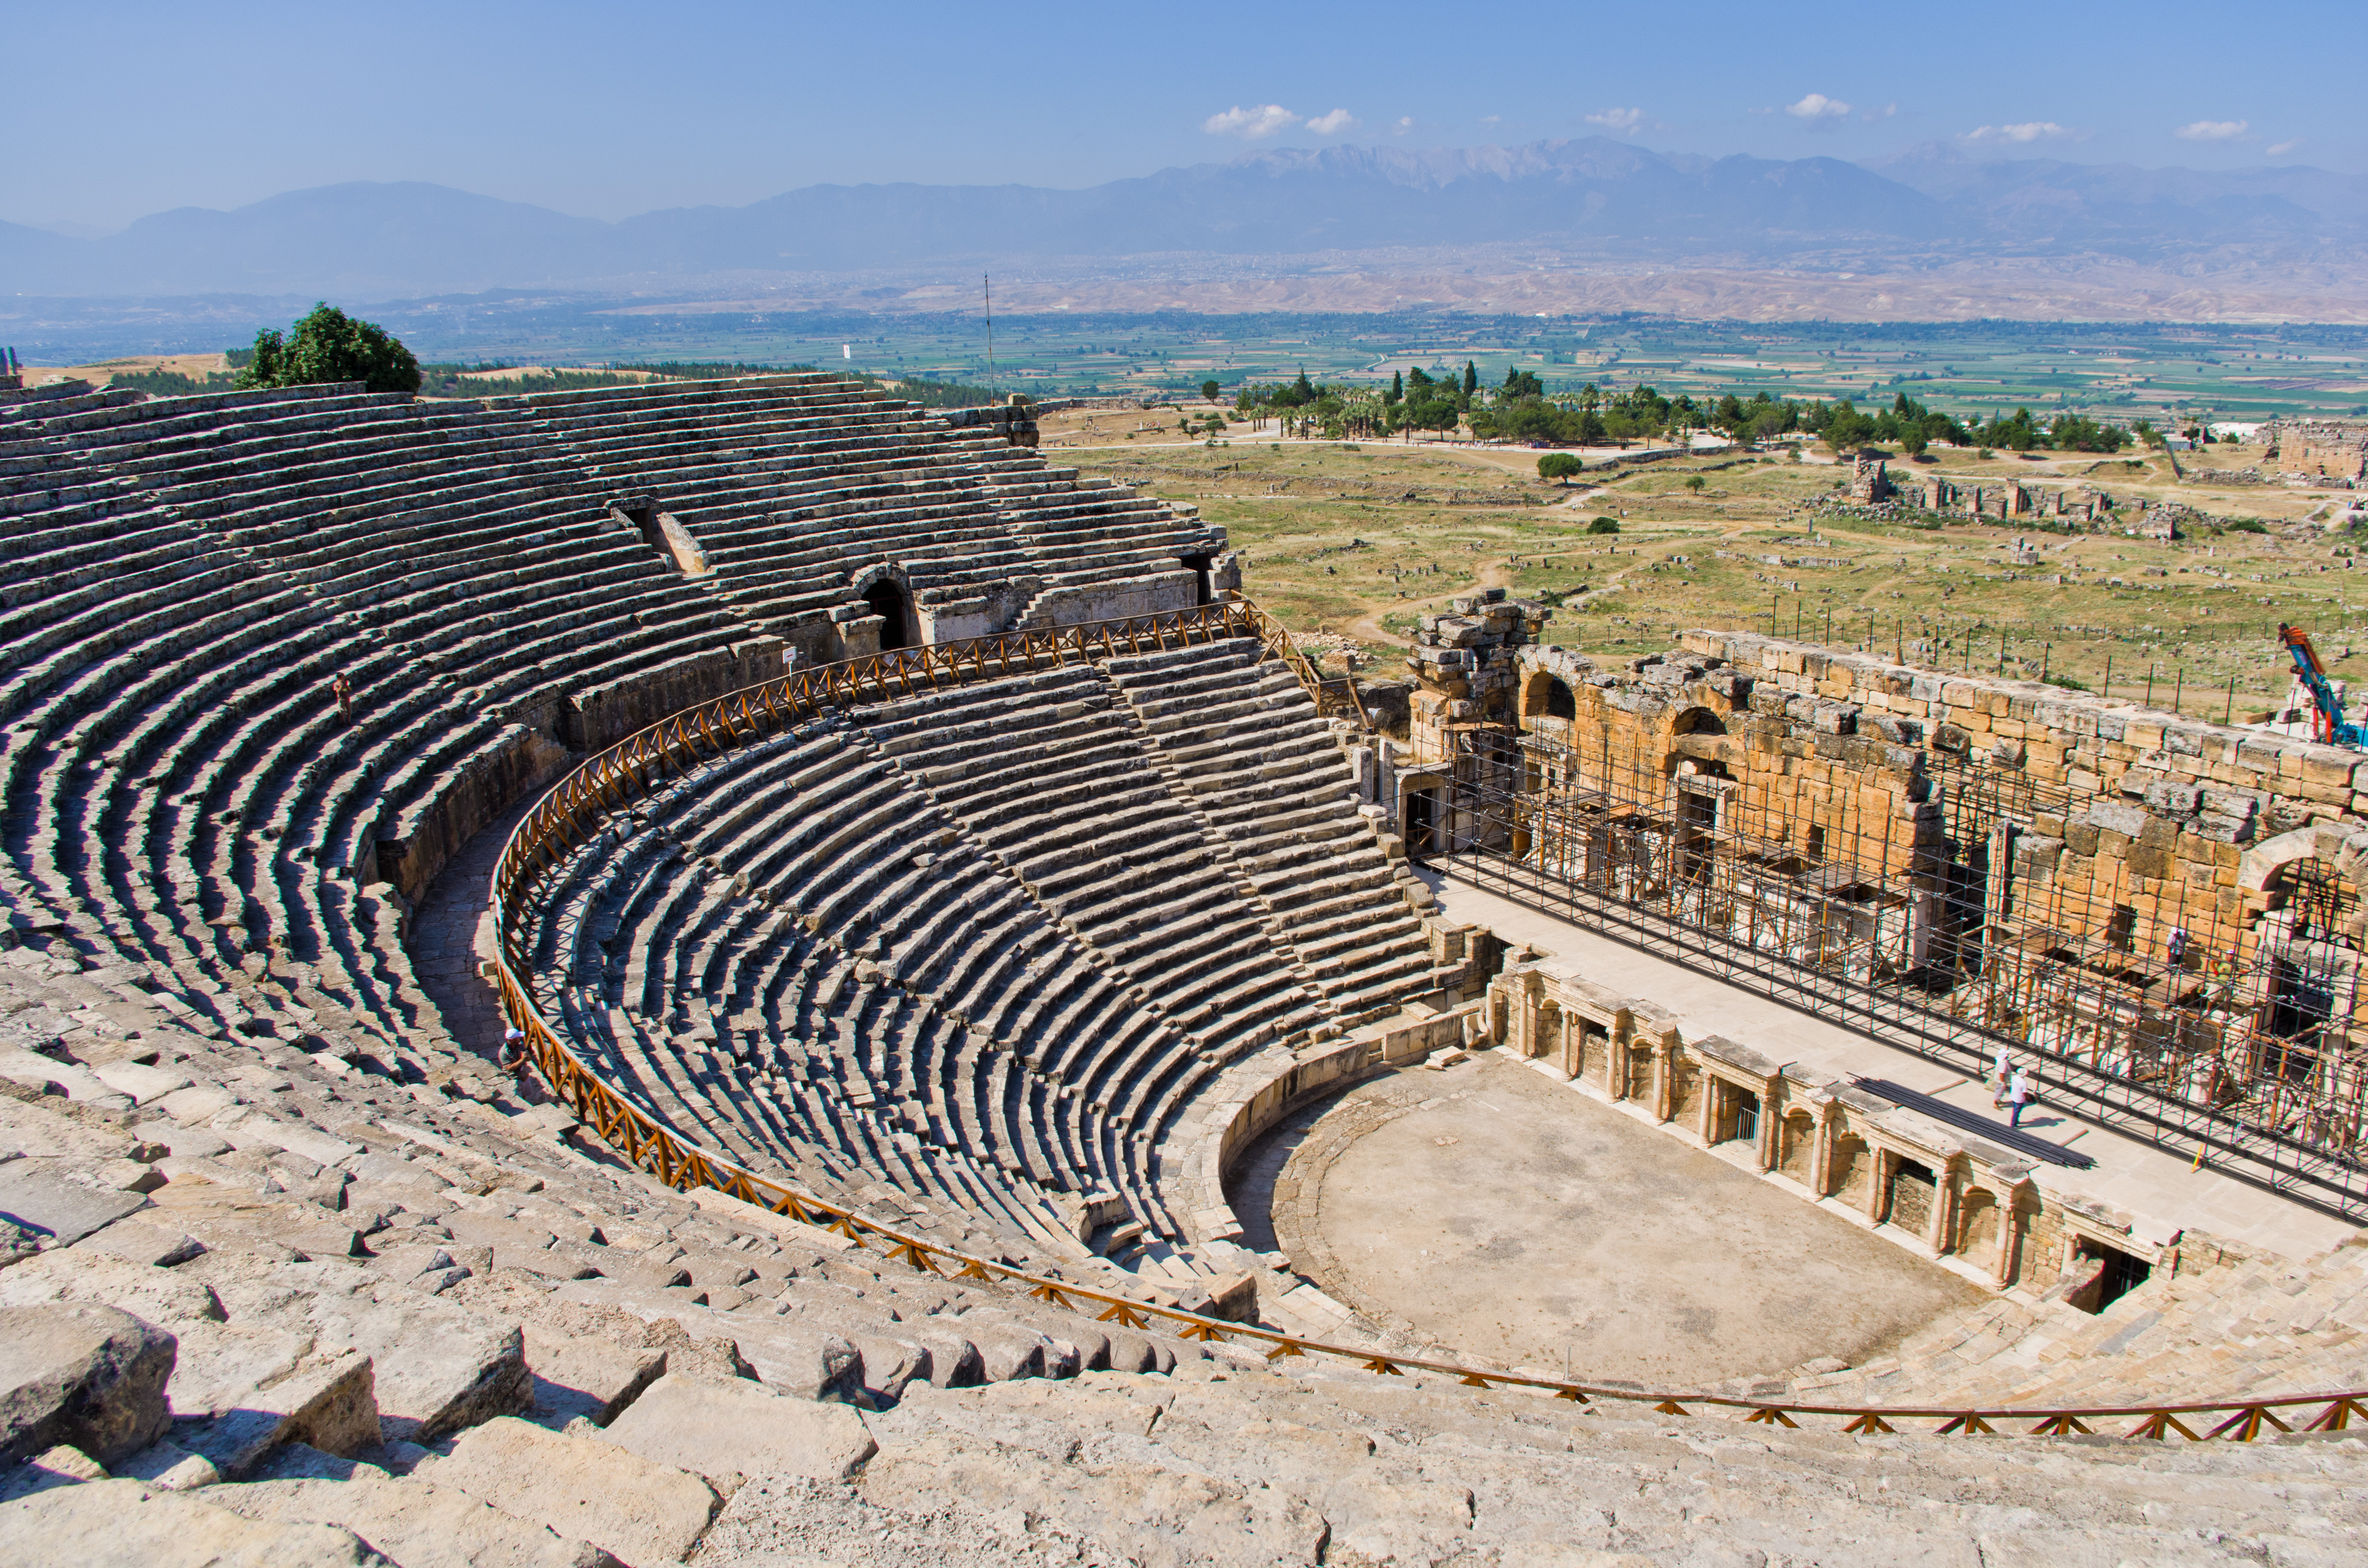 https://upload.wikimedia.org/wikipedia/commons/8/8b/Theatre_in_Hierapolis_5.jpg